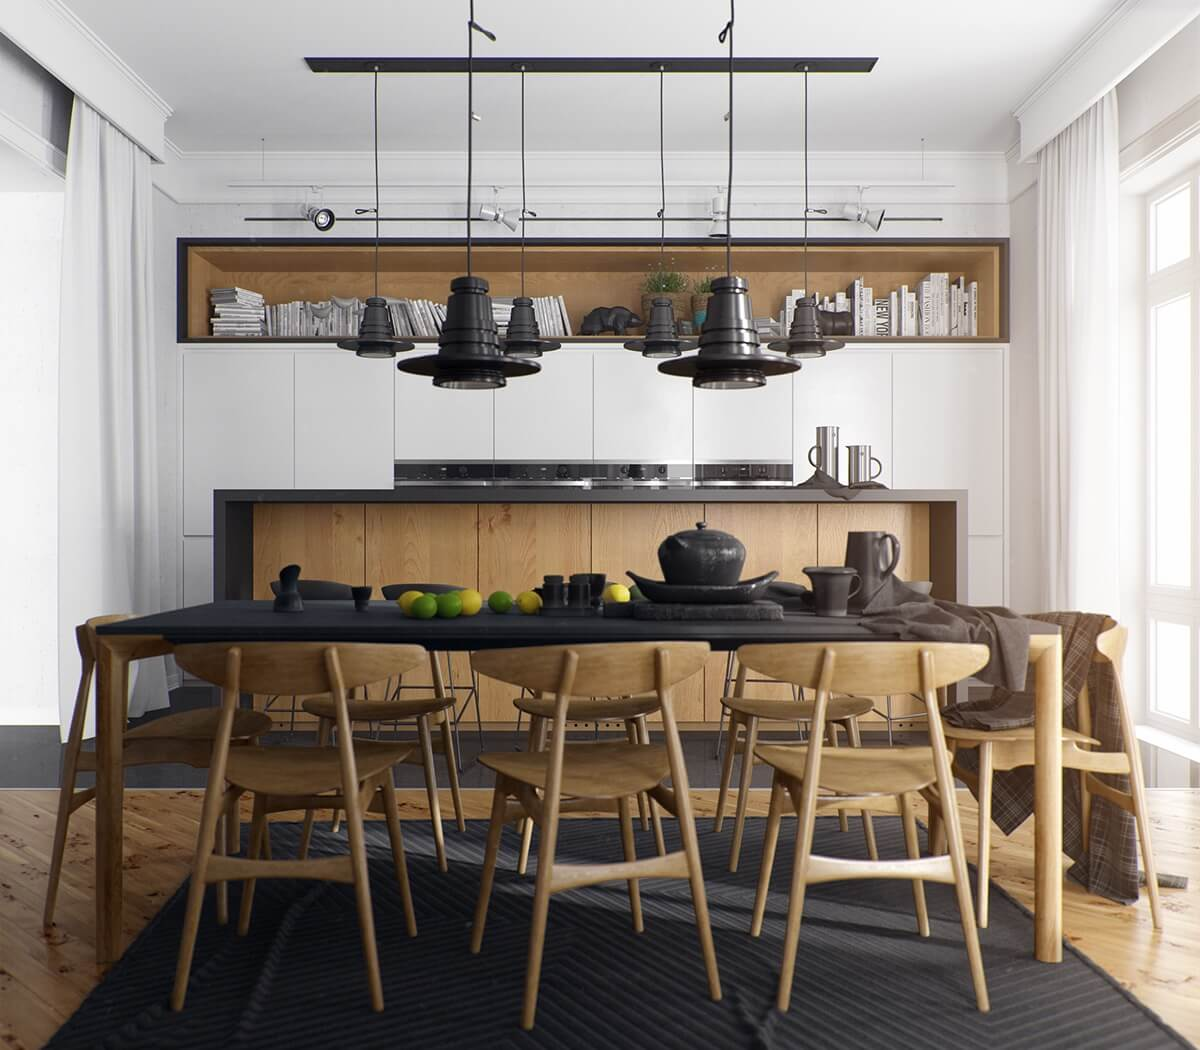 INDUSTRIAL LIGHT AND DARK WOOD DINING TABLE